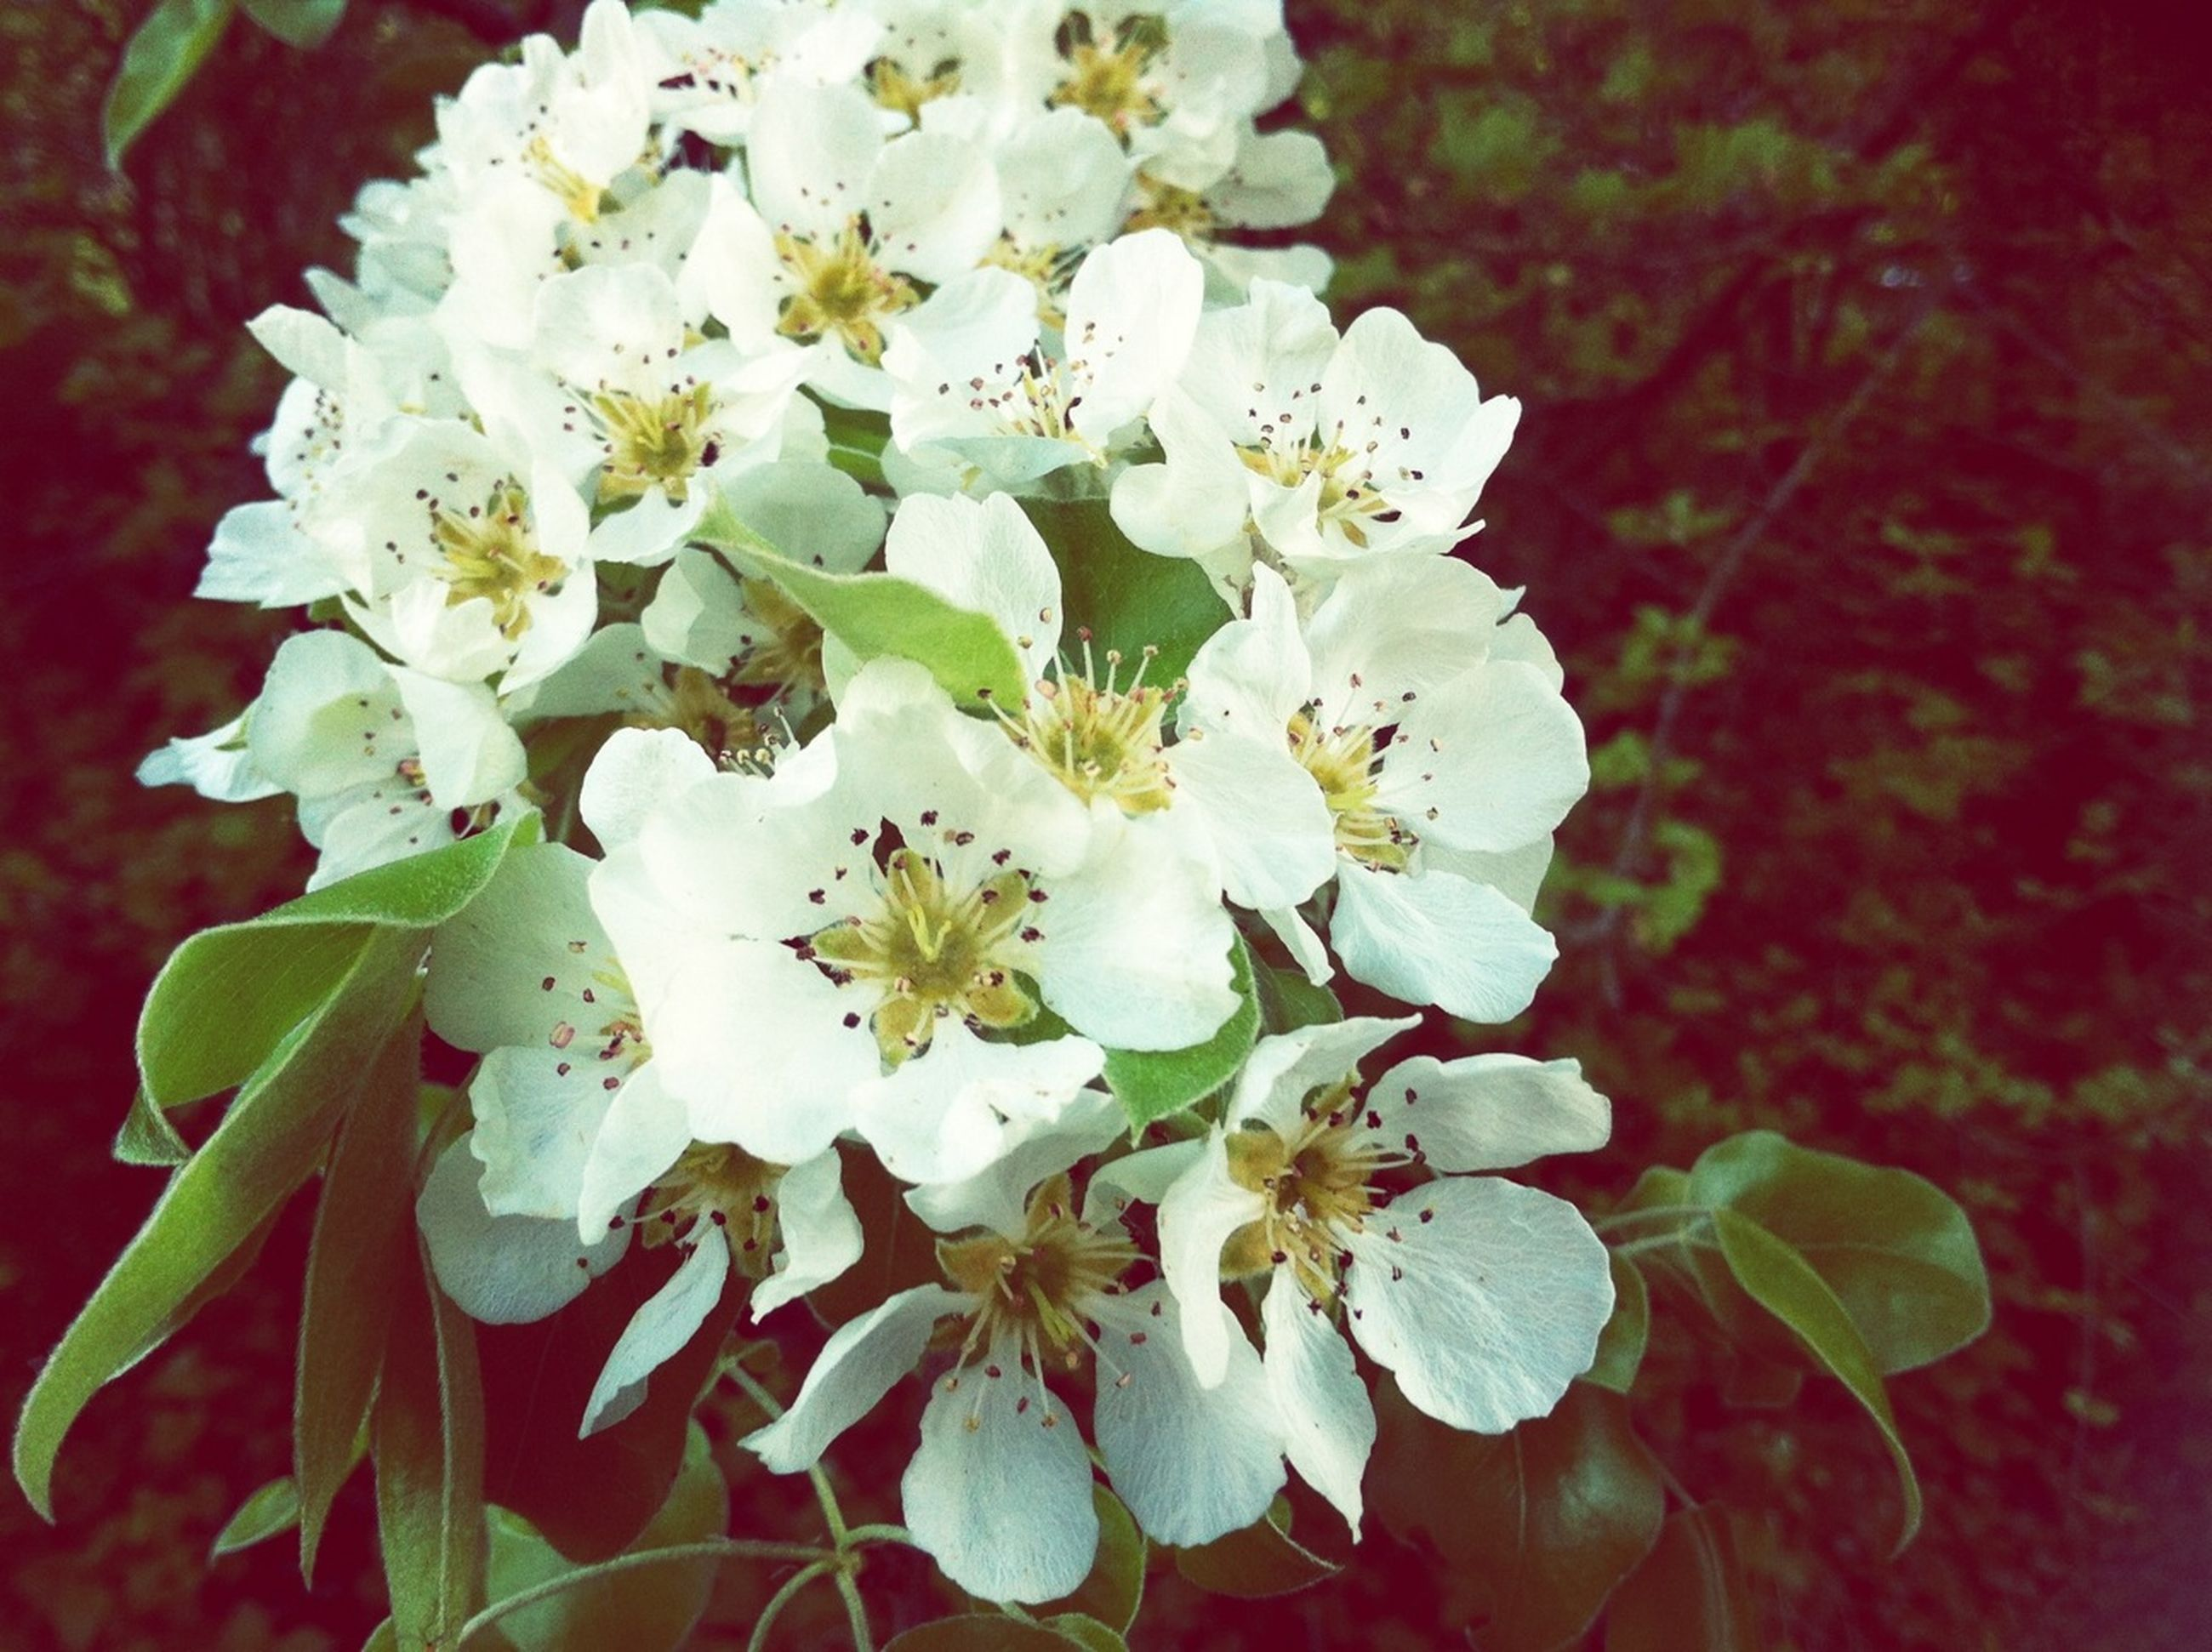 flower, freshness, petal, fragility, growth, flower head, beauty in nature, white color, blooming, nature, close-up, blossom, in bloom, plant, leaf, focus on foreground, springtime, stamen, botany, bunch of flowers